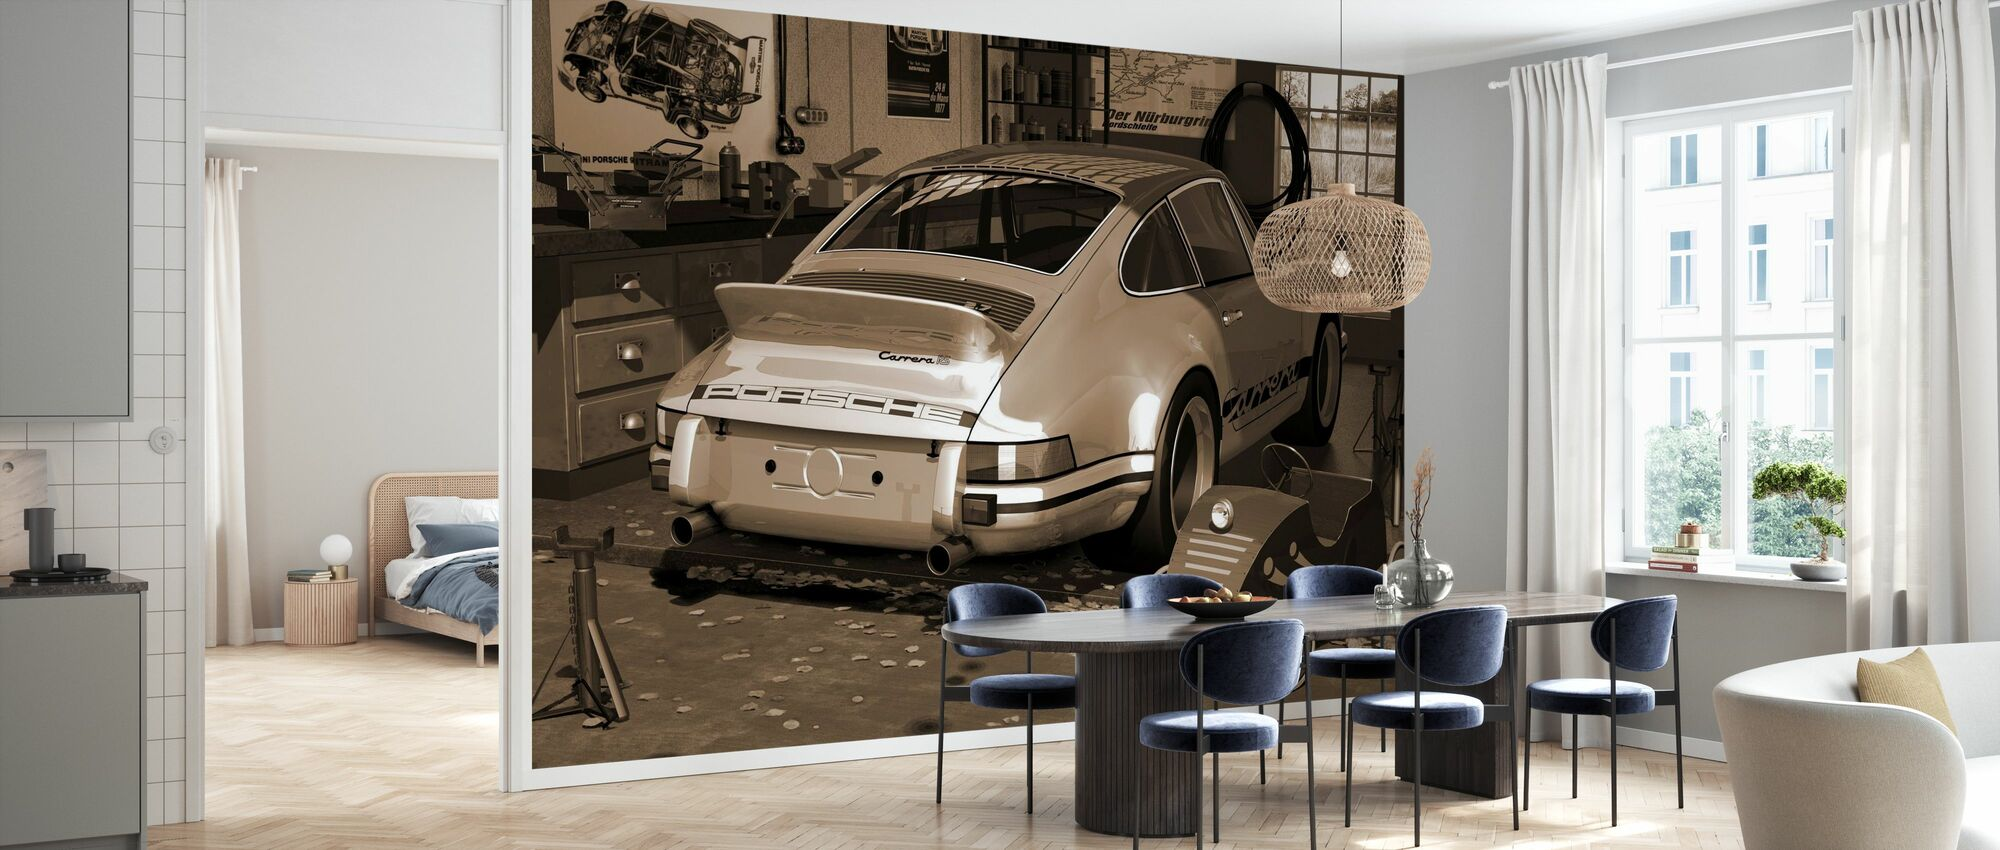 My first and second car - Sepia - Wallpaper - Kitchen